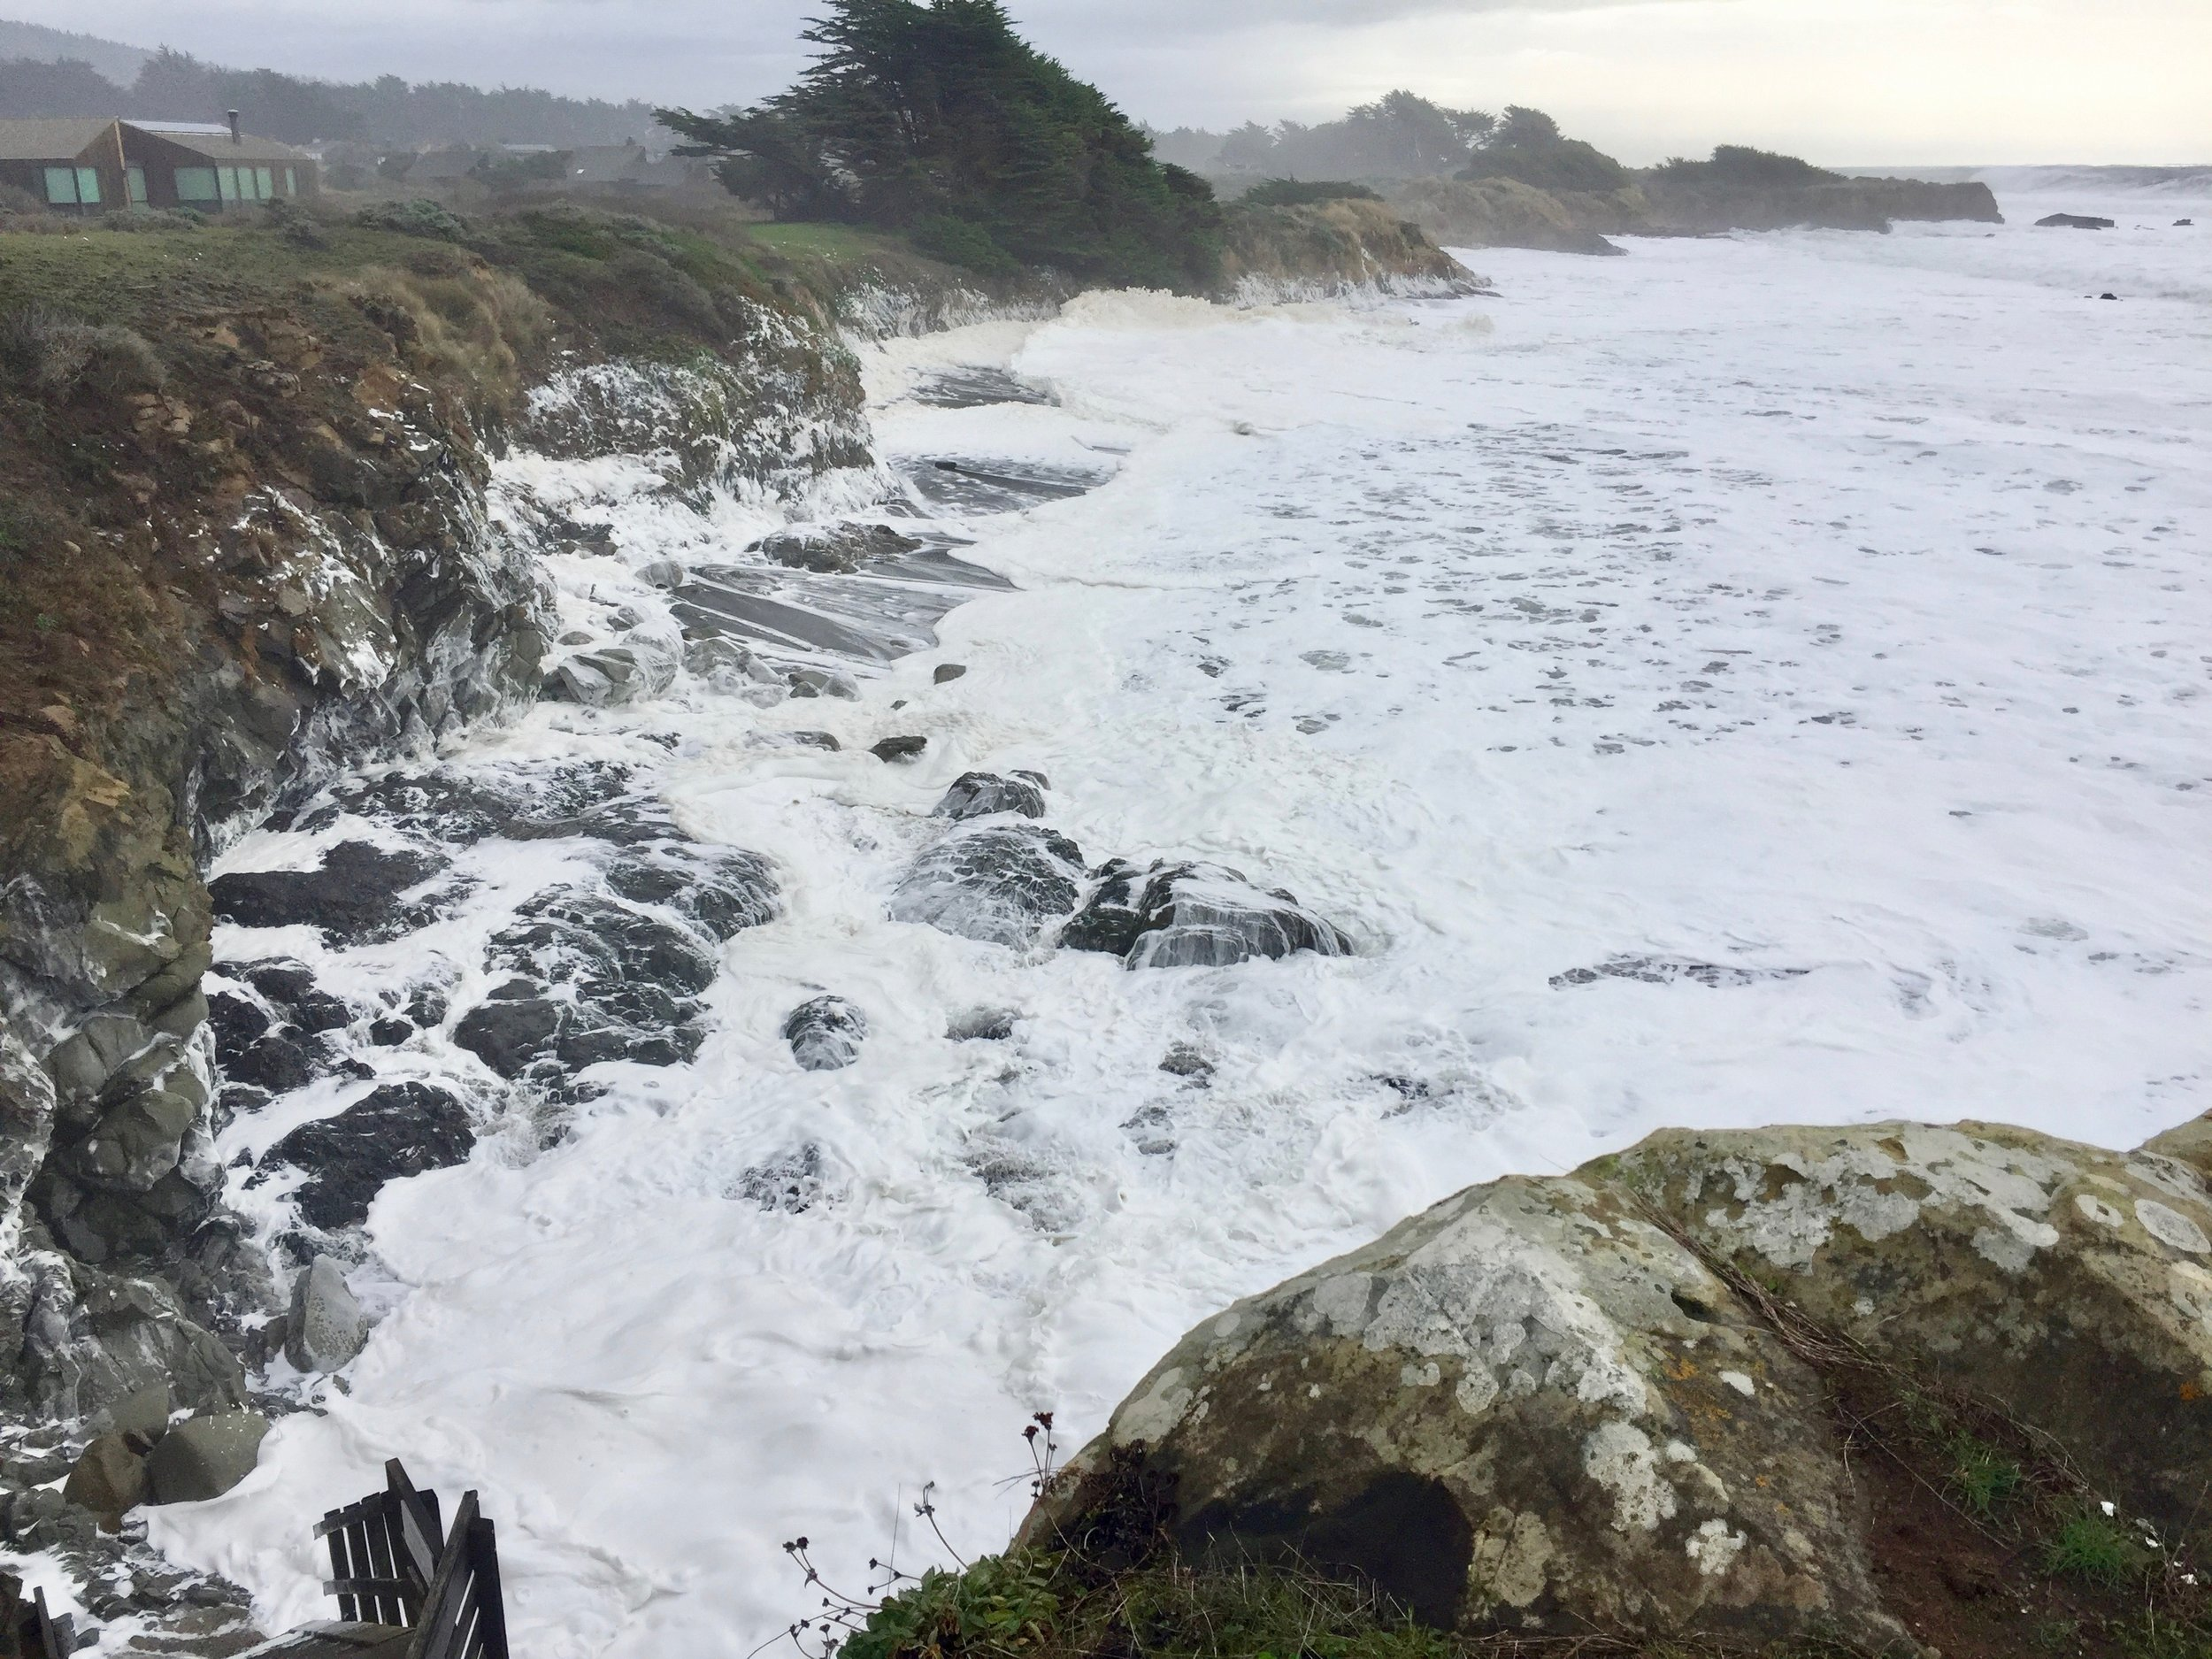 Walk-on-Beach in front of Casa Pacis during a super storm, with up to 50' waves (photo by Klaus, 1/17/2019)